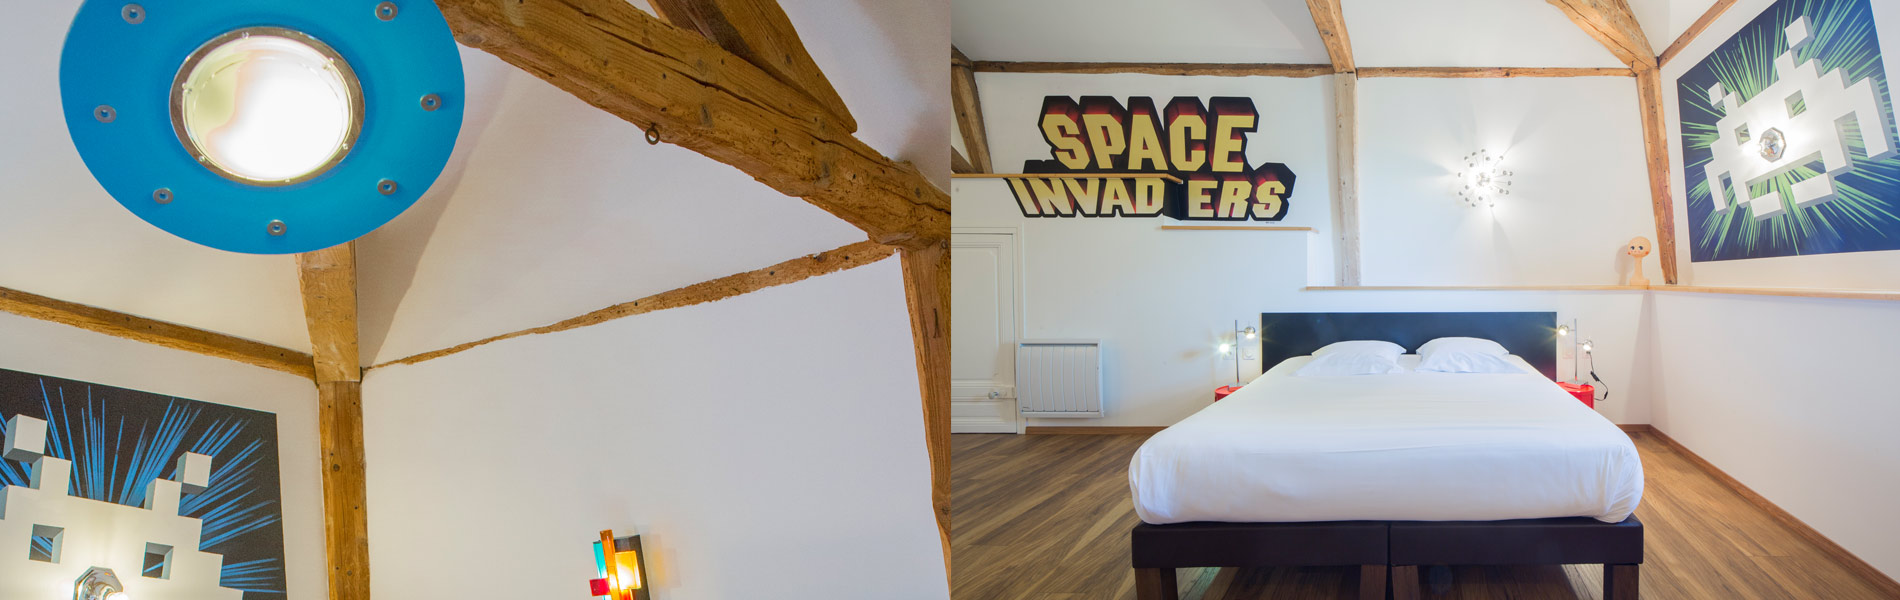 Chambre Space Invaders - Maison Vintage